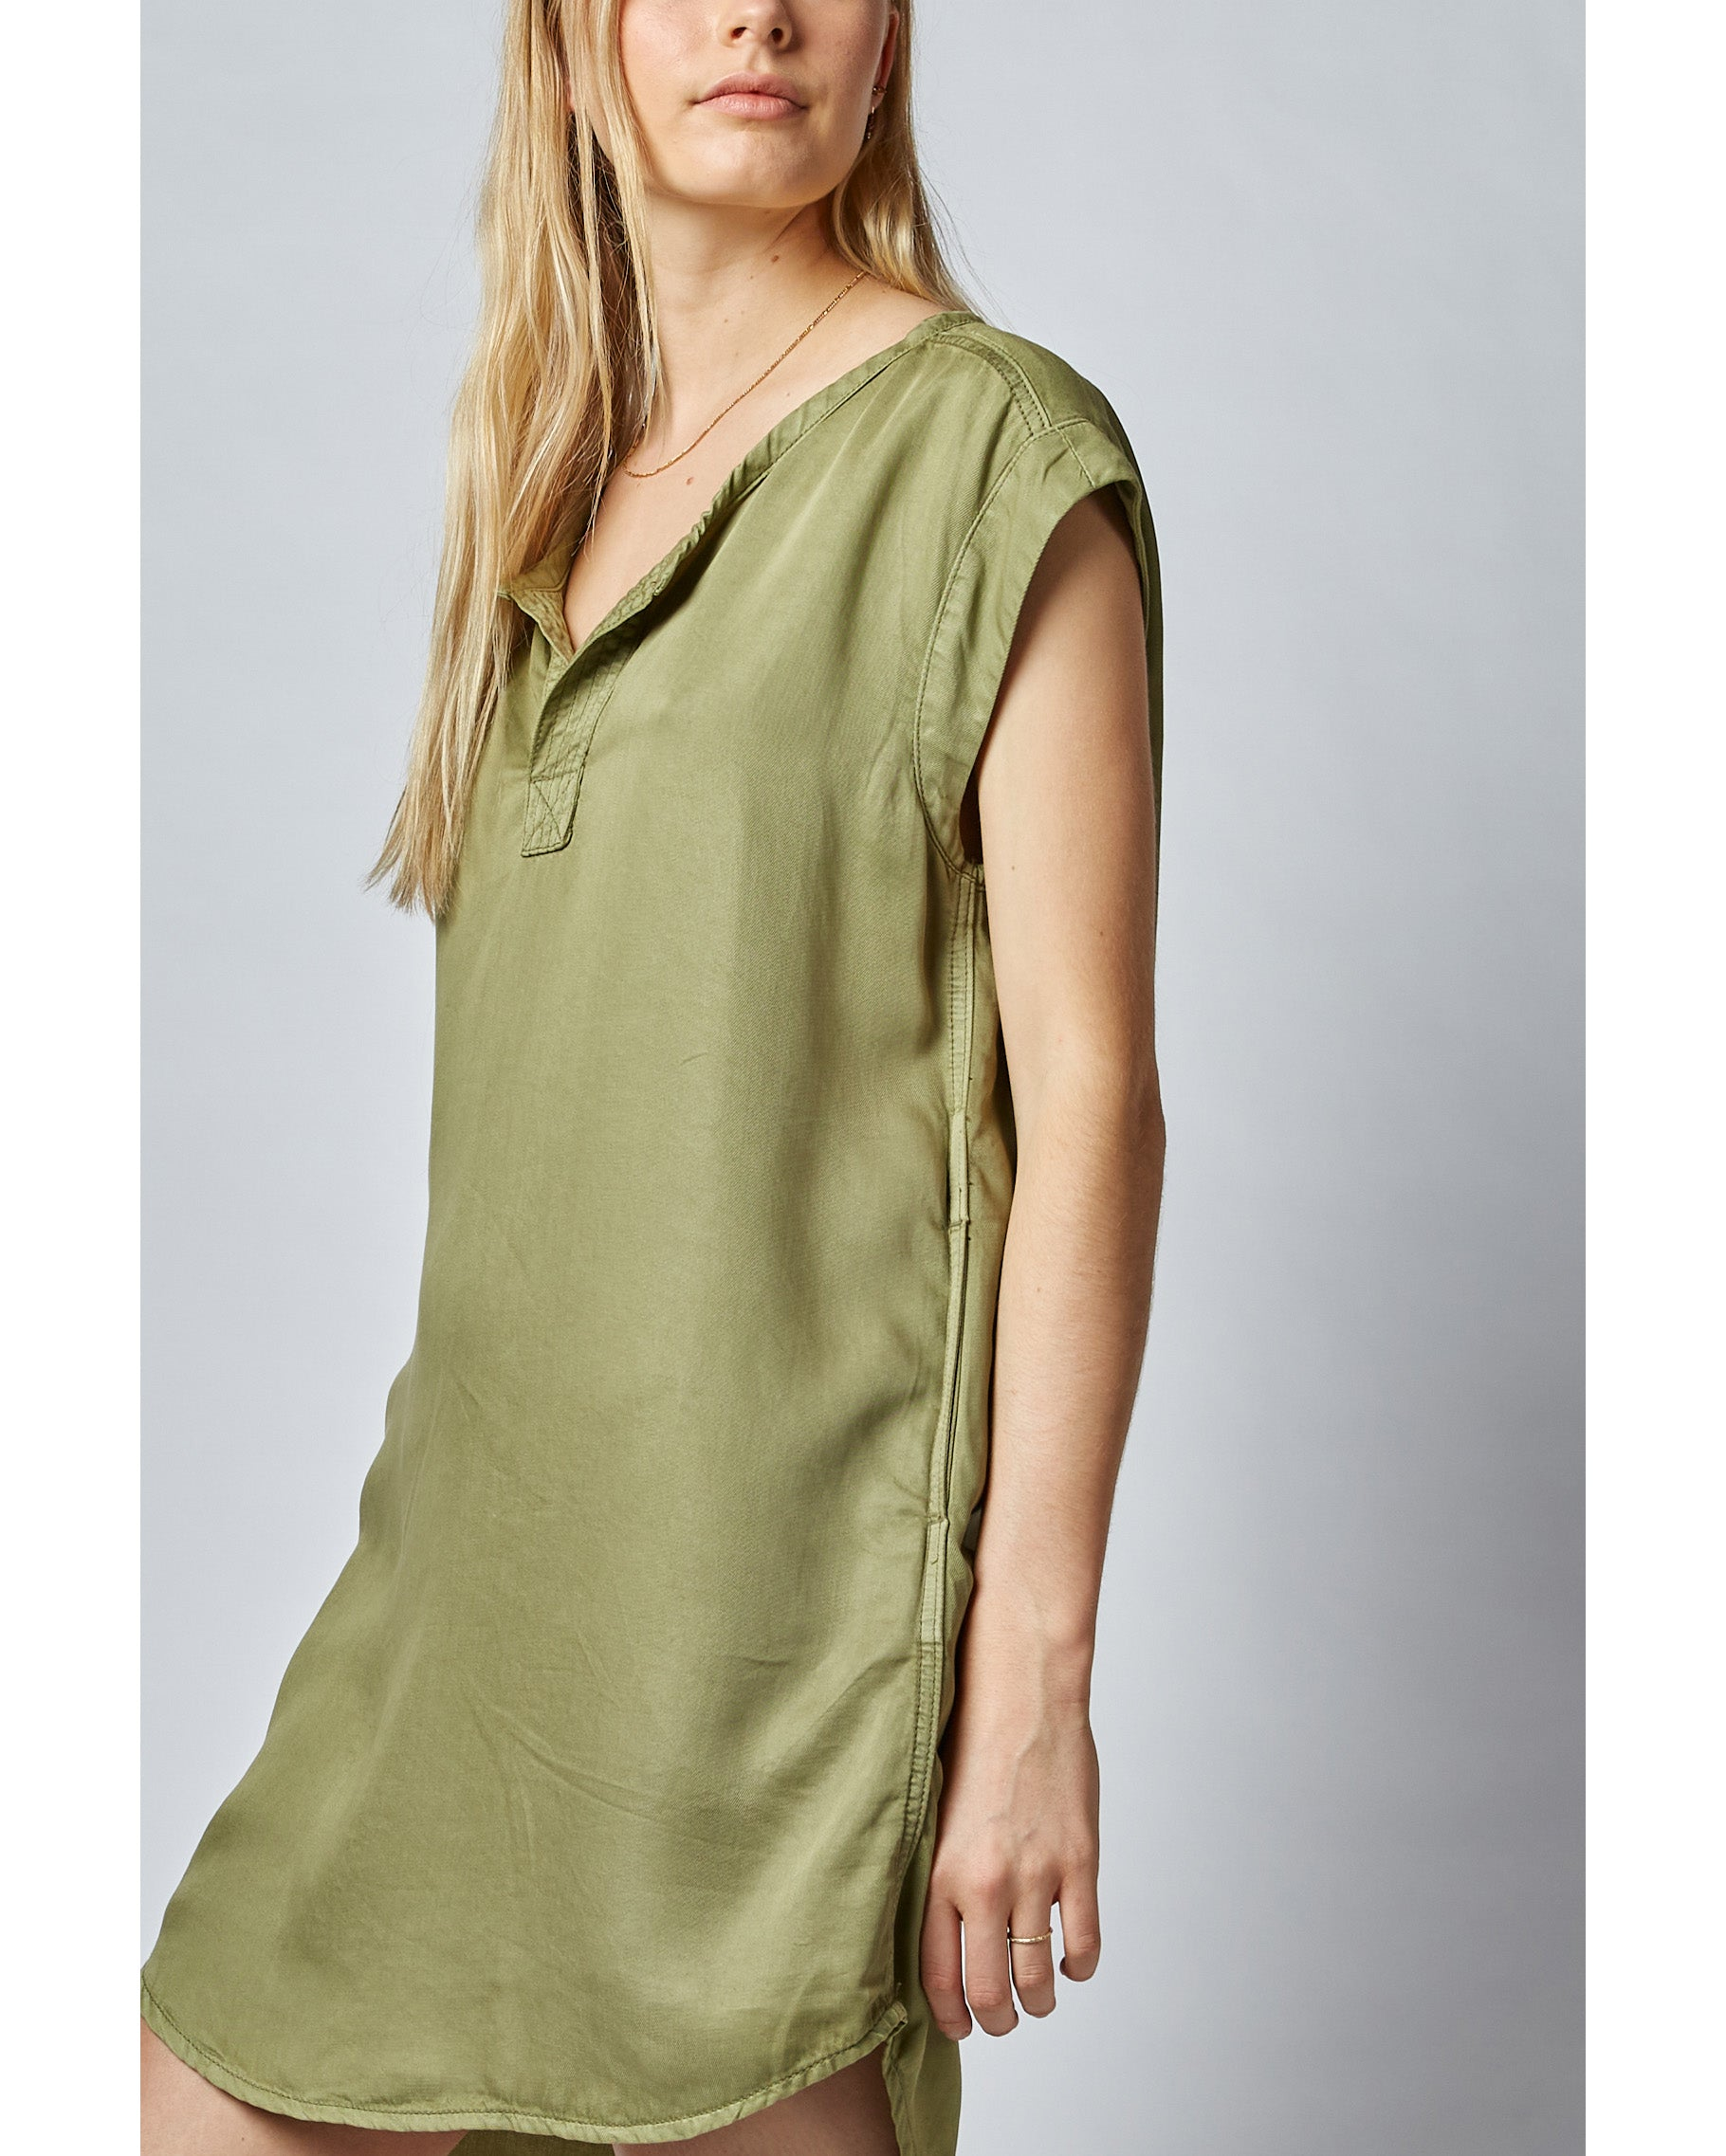 Dricoper Novia Tunic Dress - Khaki